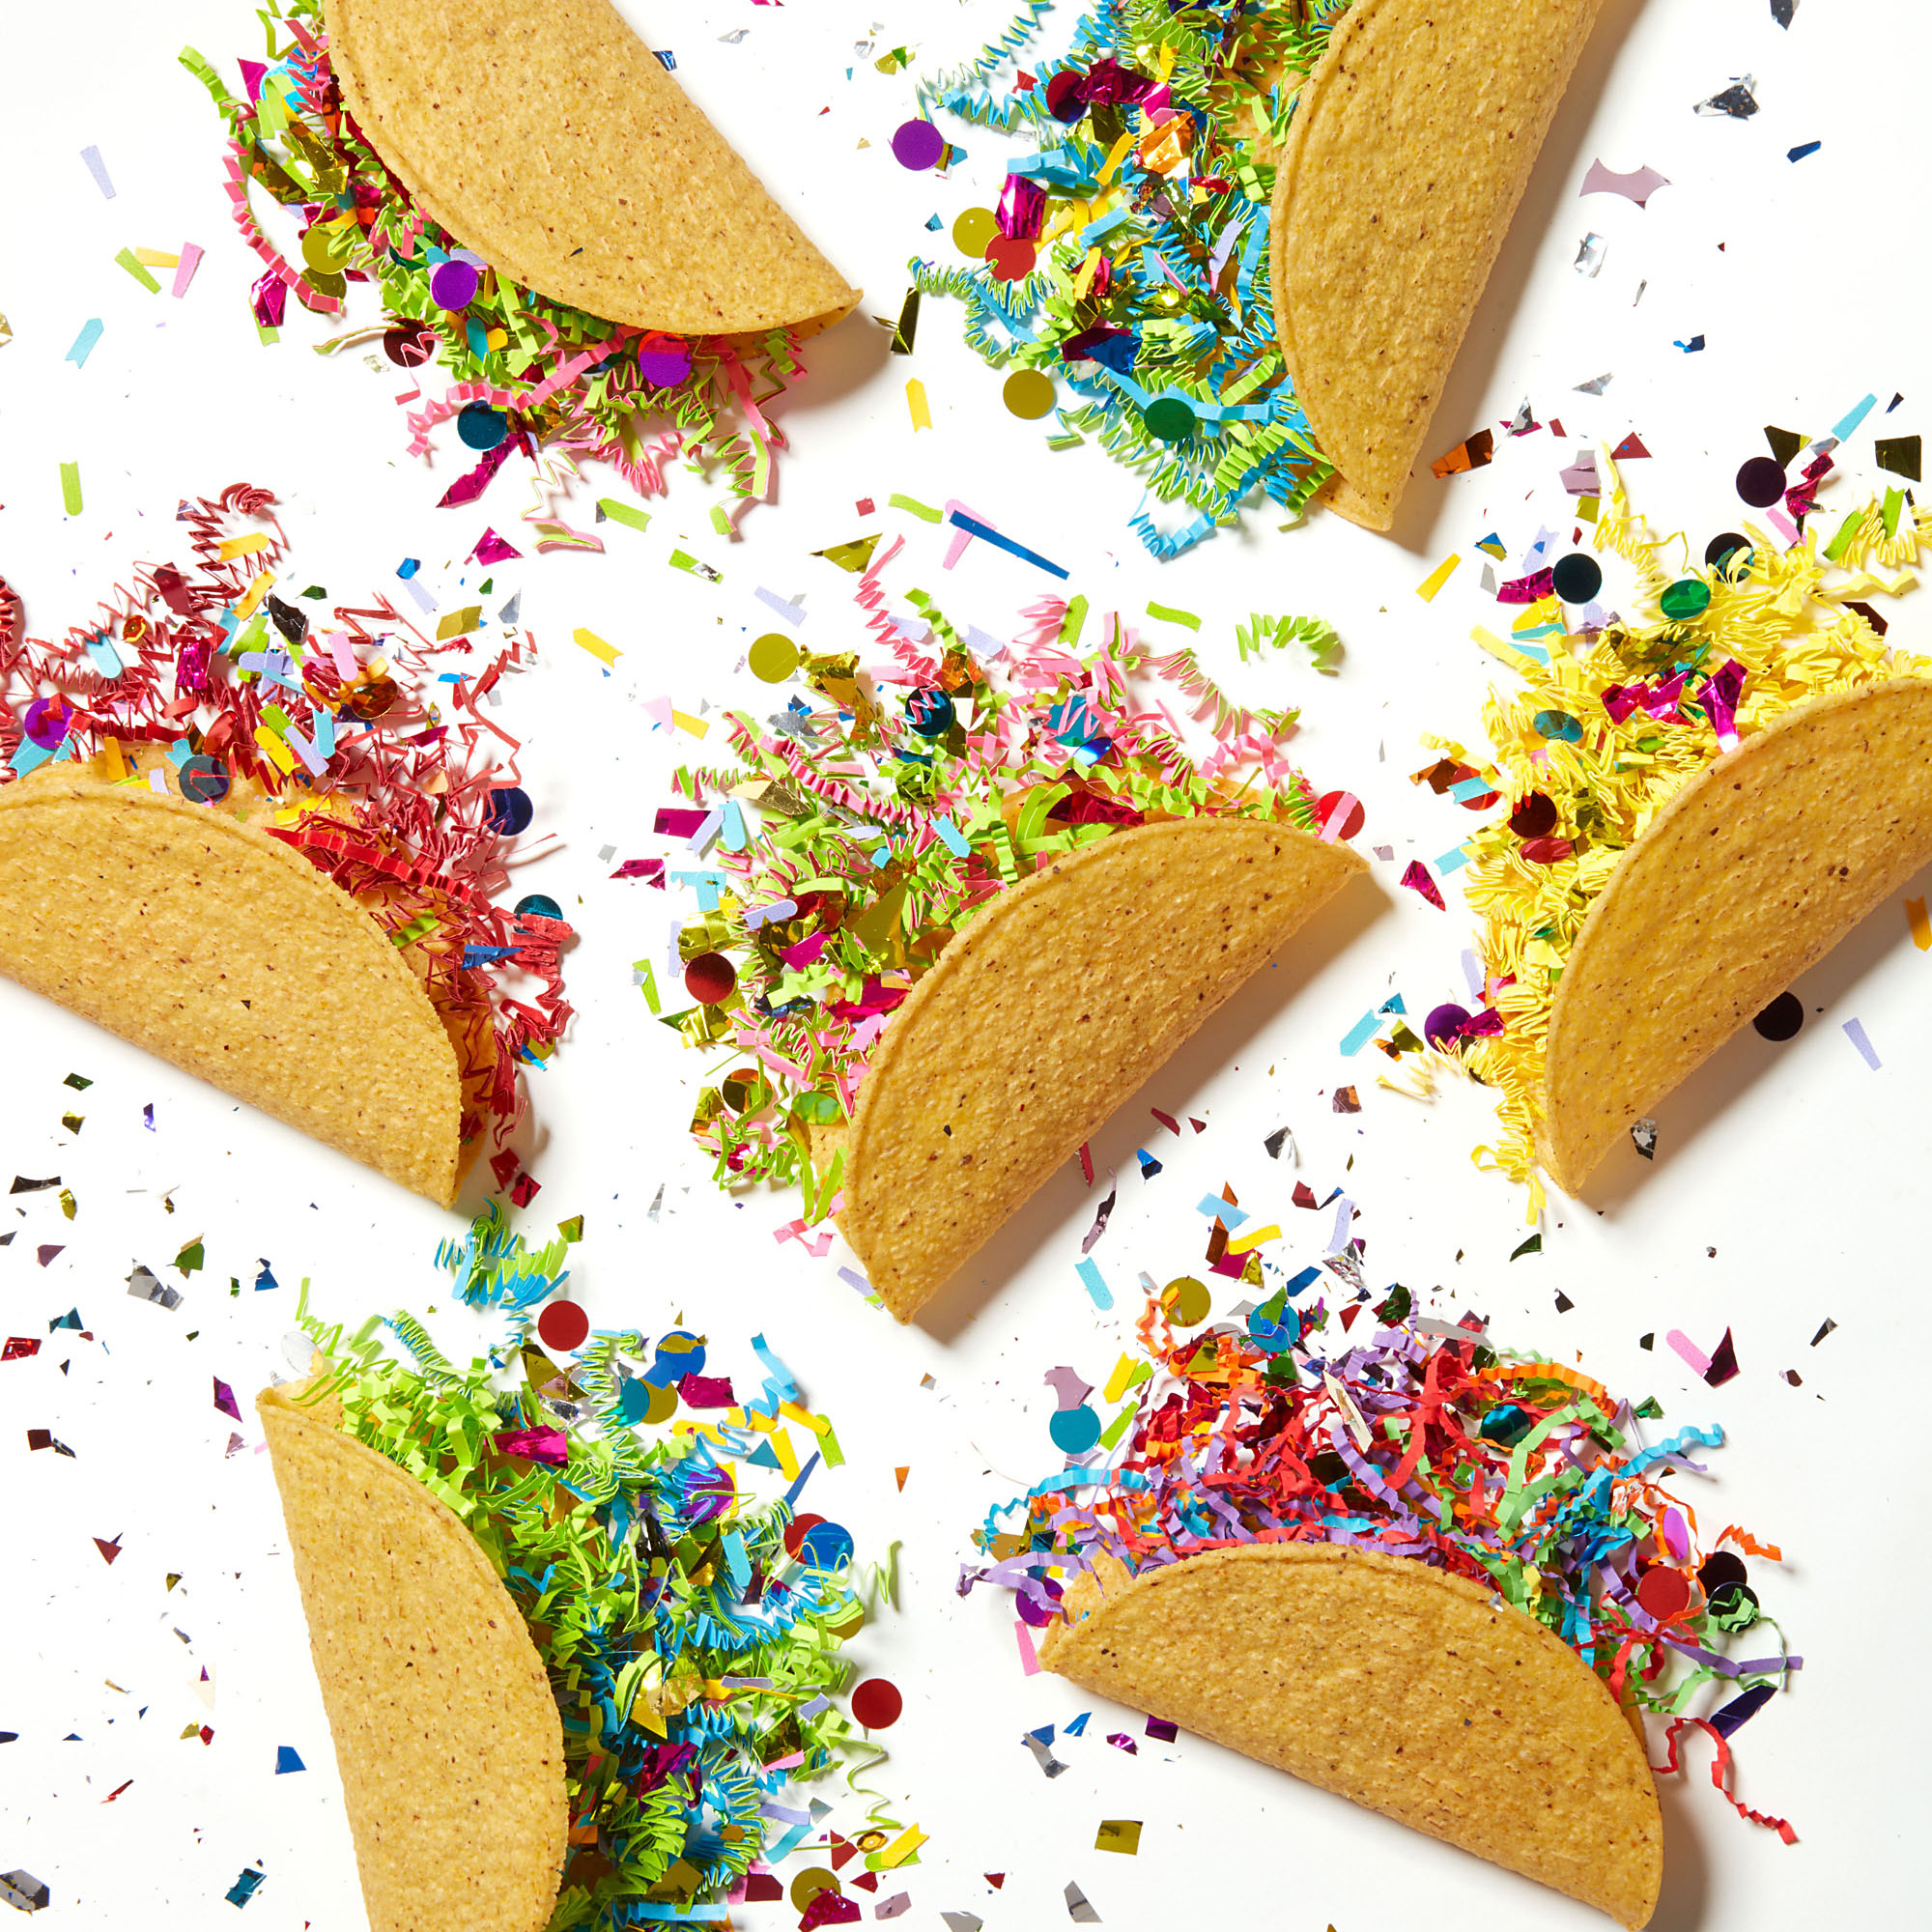 tacos filled with confetti